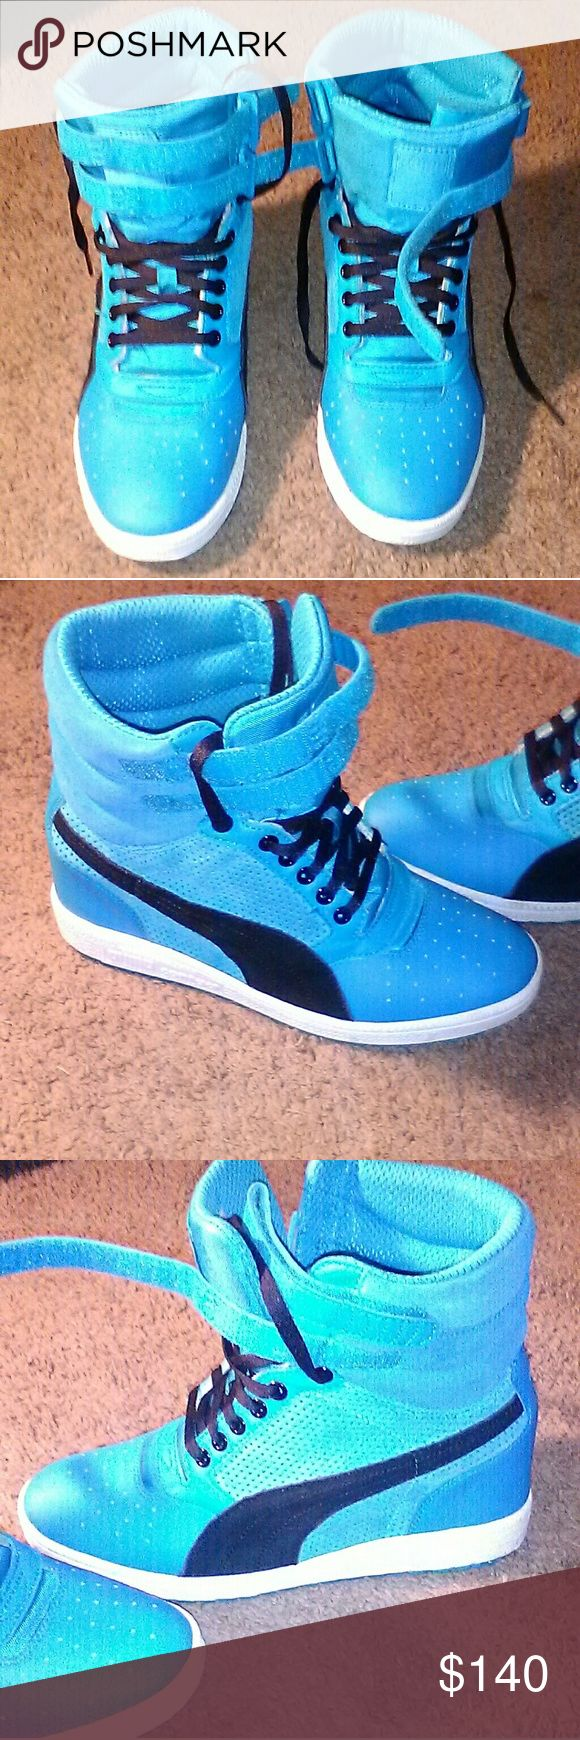 Turquoise Wedge Shoes Very good condition used wedge tennis shoes Size 10 Puma Shoes Sneakers